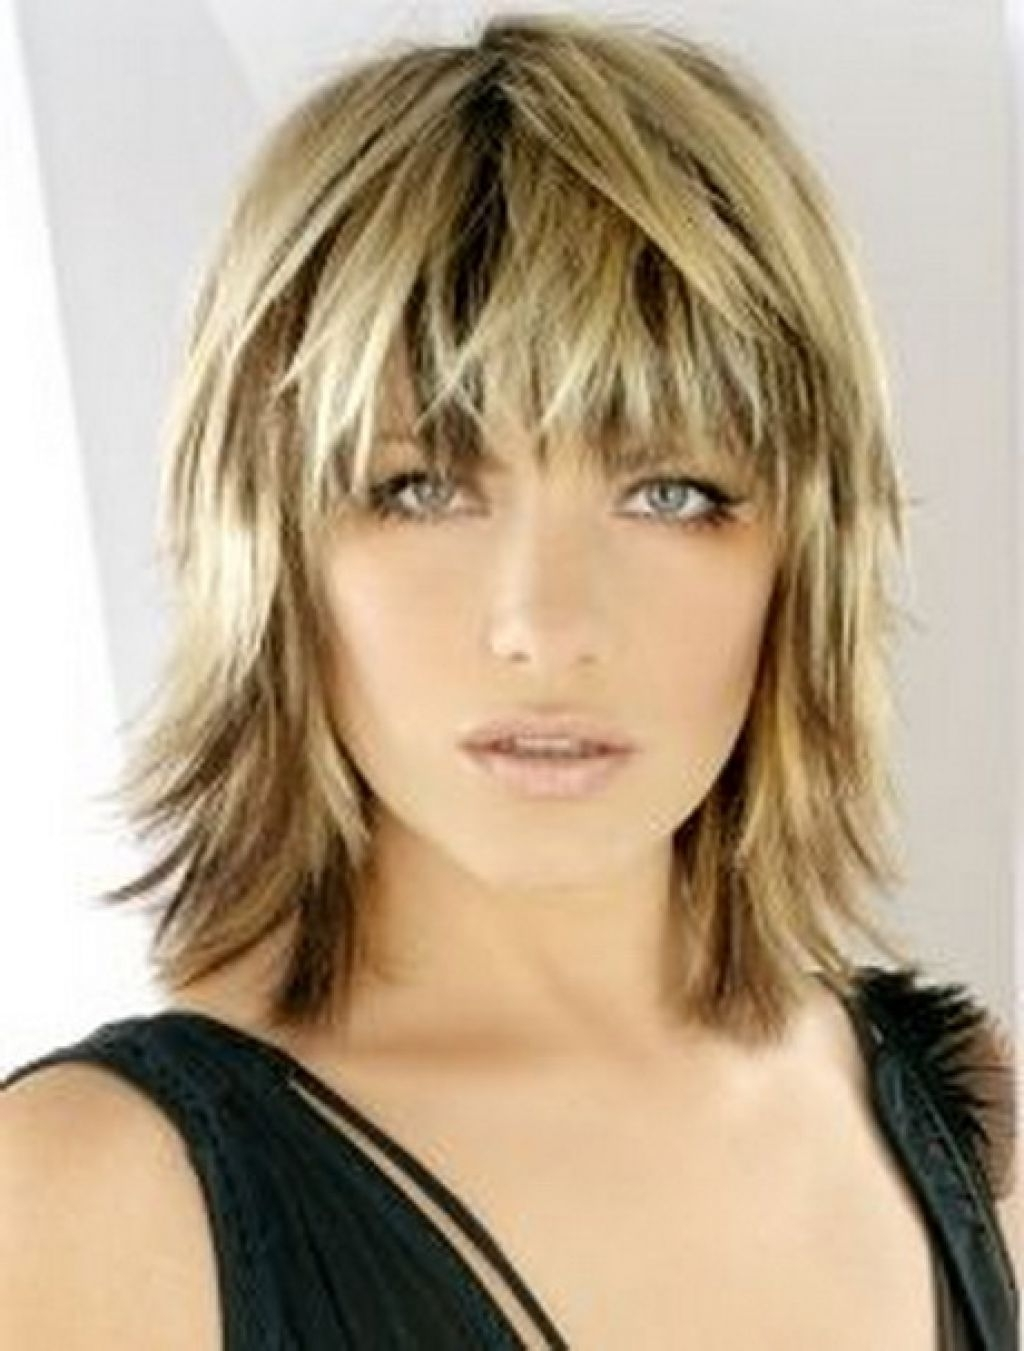 Fashionable Shaggy Bob Hairstyles With Bangs Regarding Medium Length Layered Haircut With Bangs – Hairstyle For Women & Man (View 13 of 15)